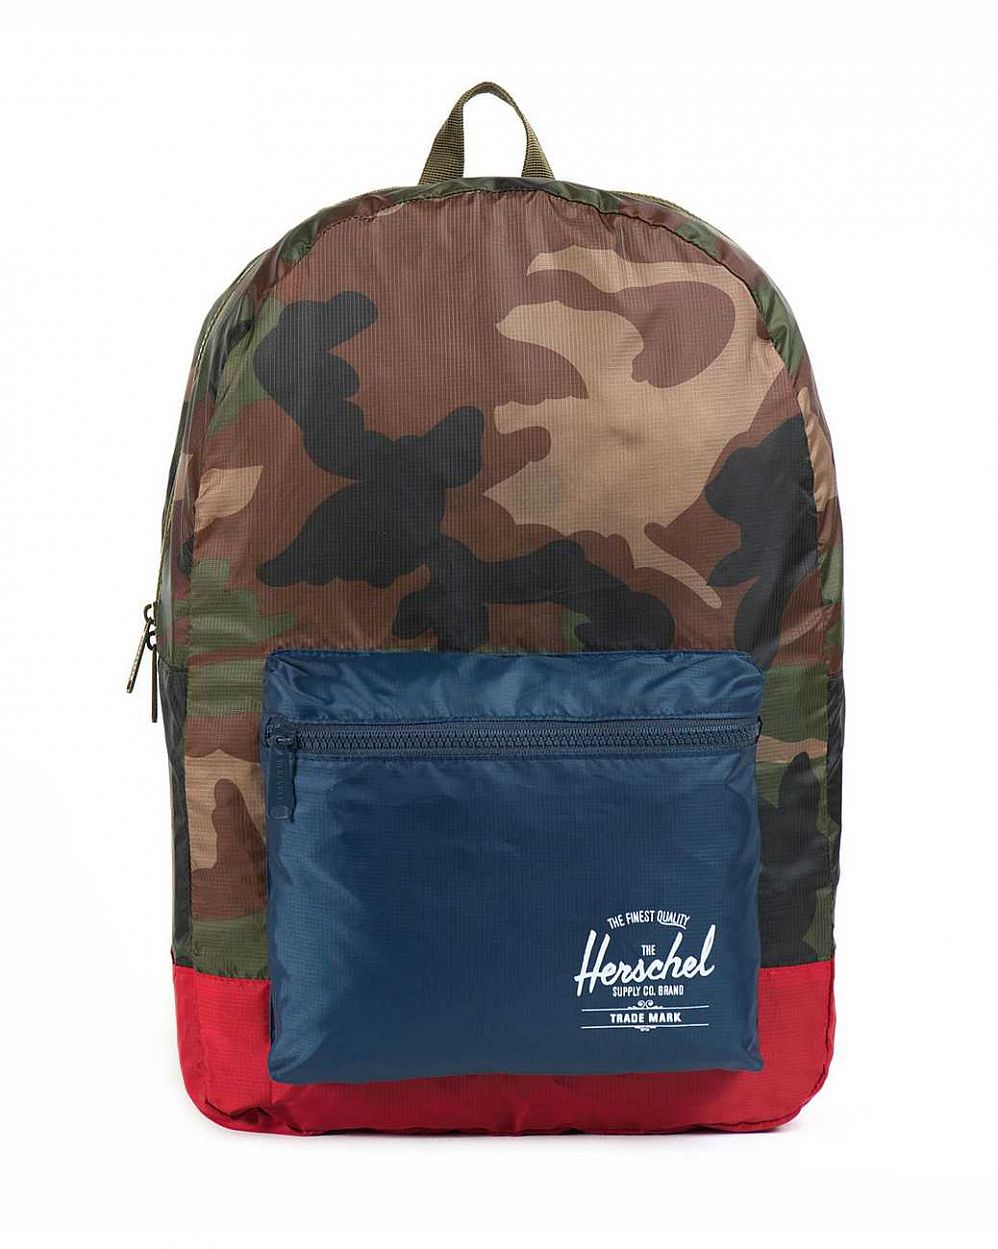 купить Рюкзак Herschel Packable Daypack Woodland Camo Navy Red в Москве